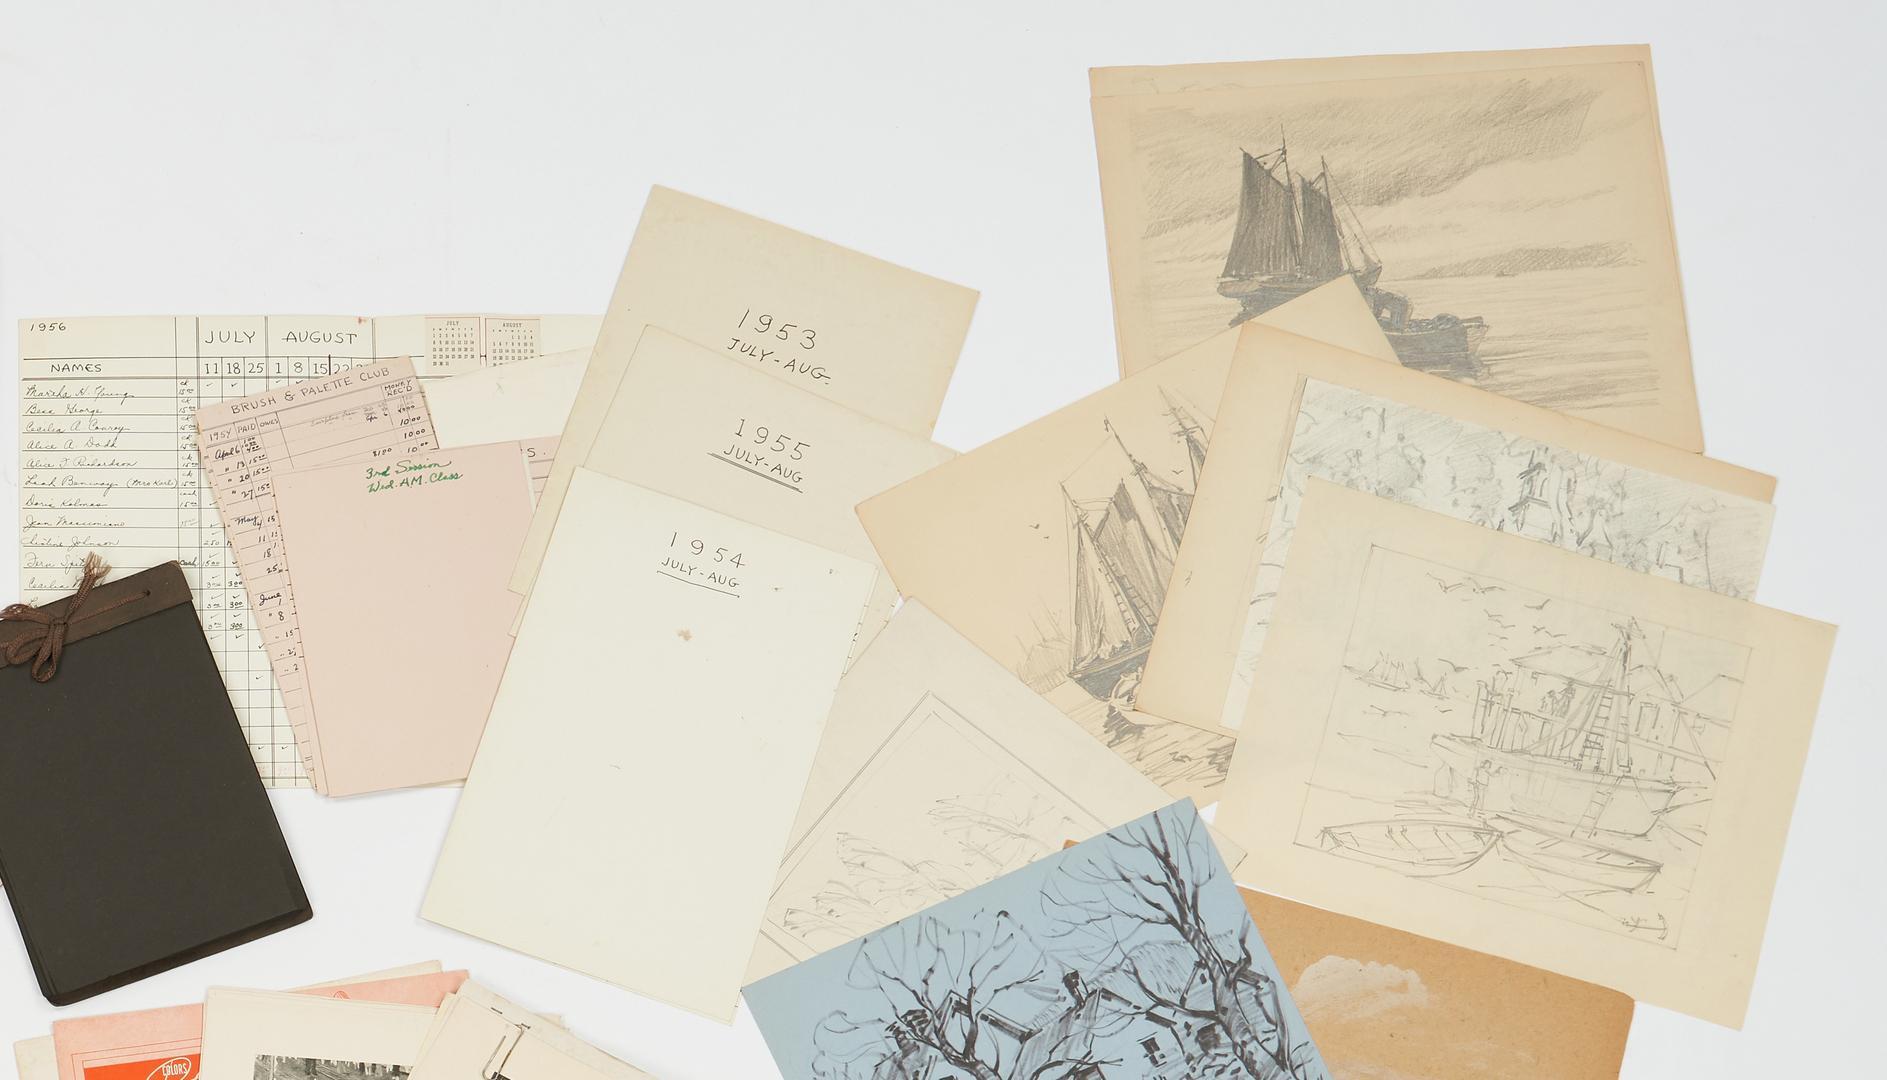 Lot 968: Archive of the Artist Leo Blake, incl. Drawings and Gouache